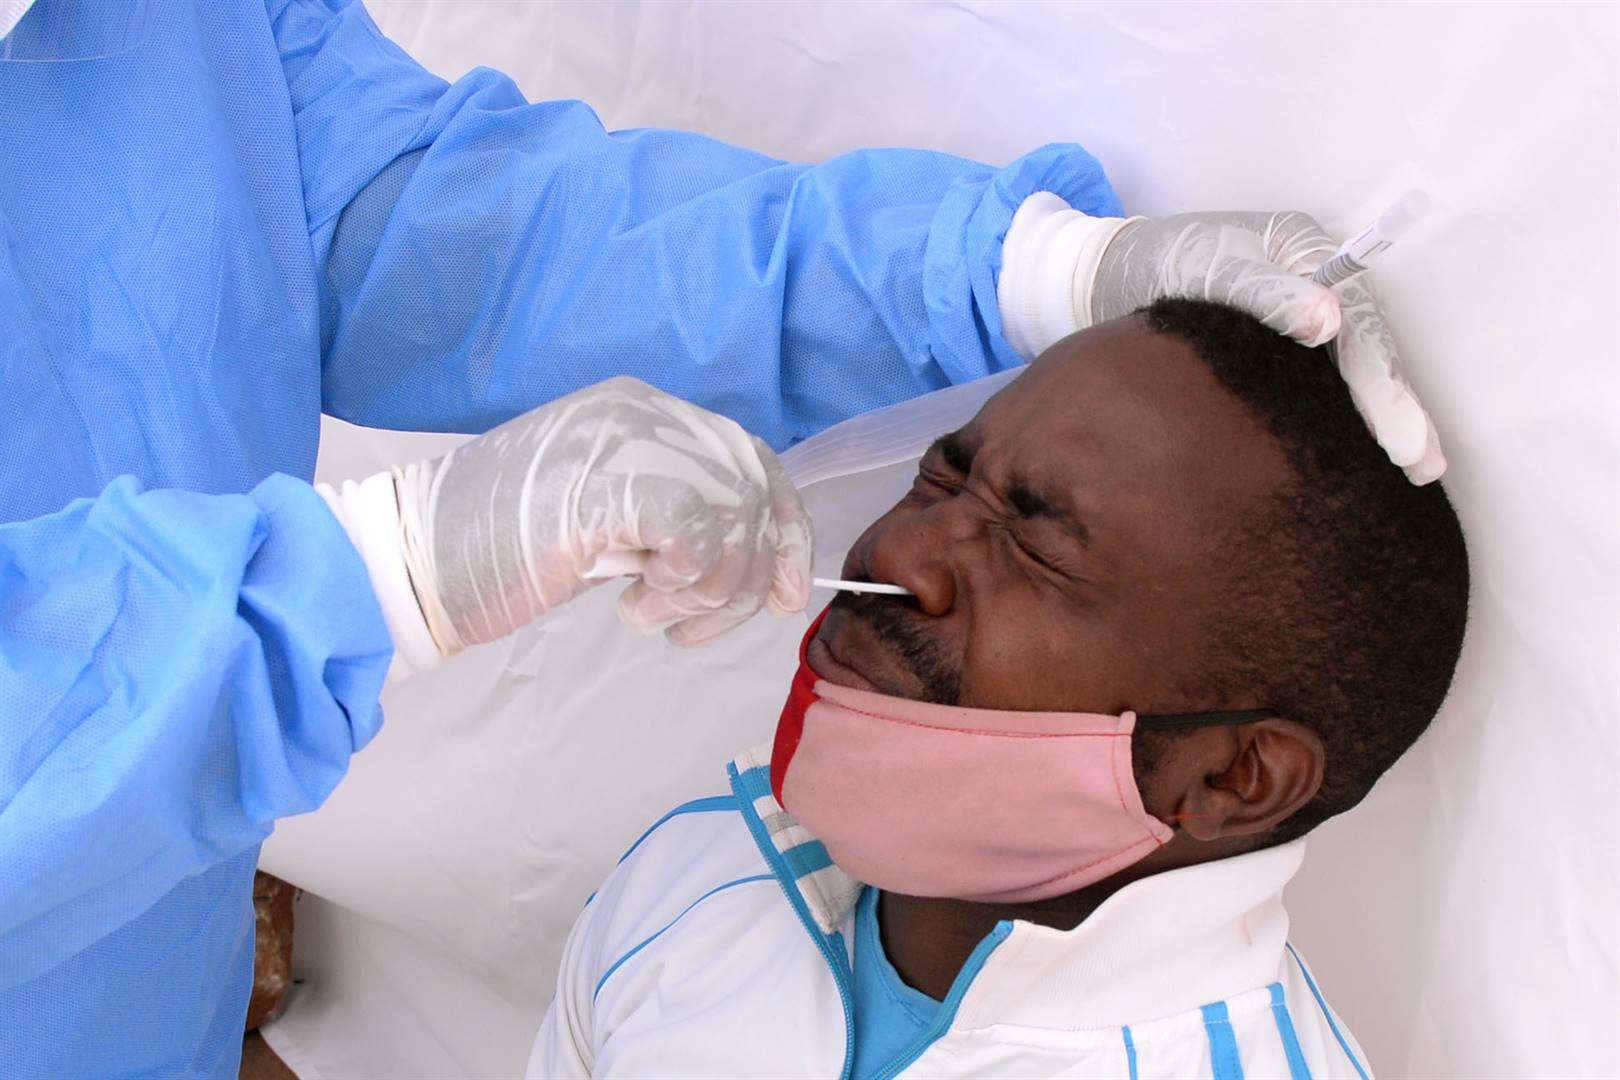 Grim Covid-19 projections for SA: 40 000 deaths, 1 million infections and a dire shortage of ICU beds - News24